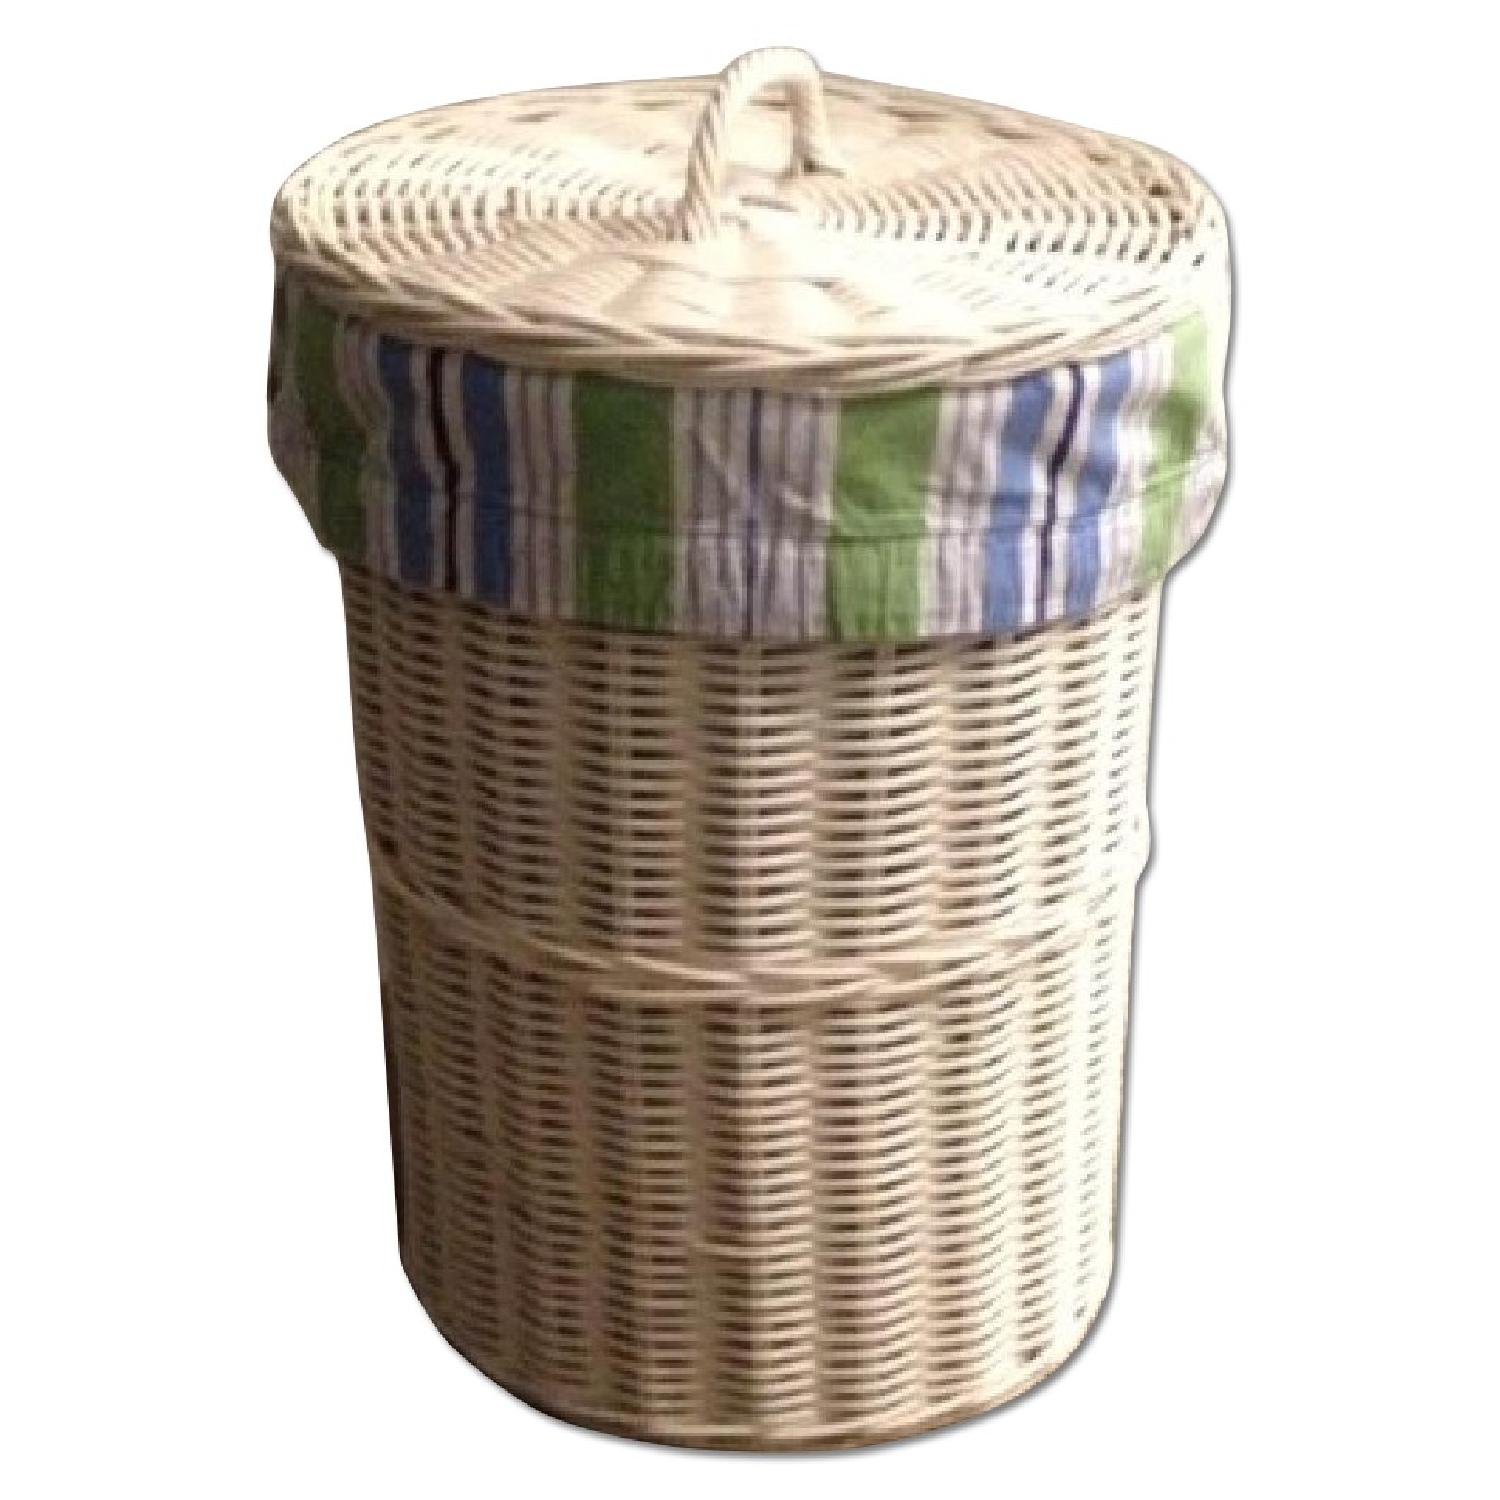 Pottery Barn Sabrina Hamper with Inserts - image-0